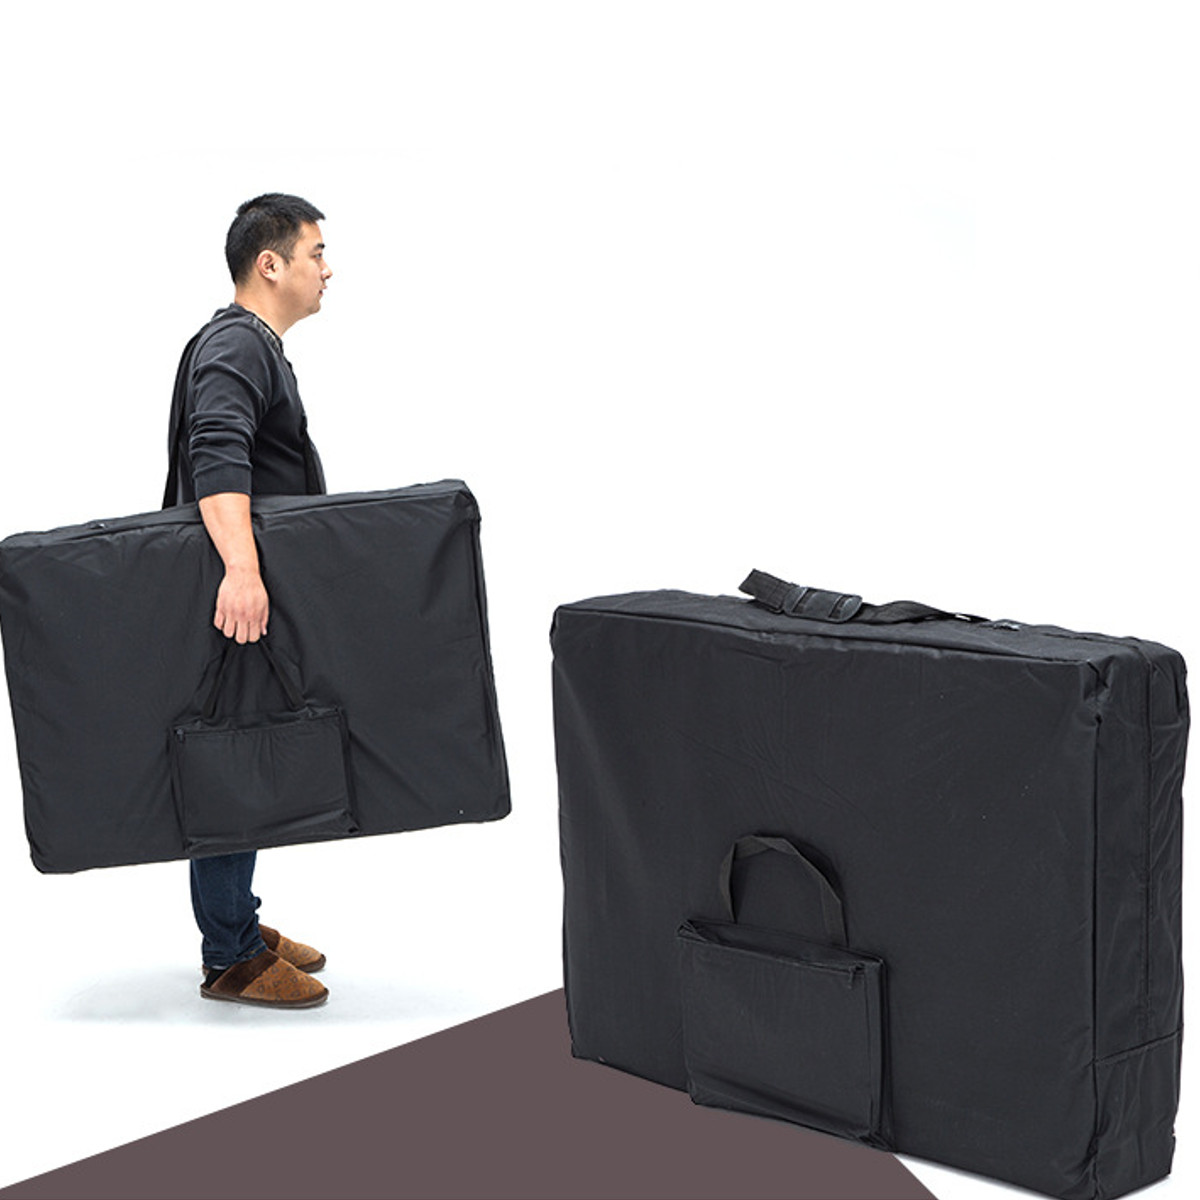 Multifunctional Portable Spa Massage Tables With Carrying